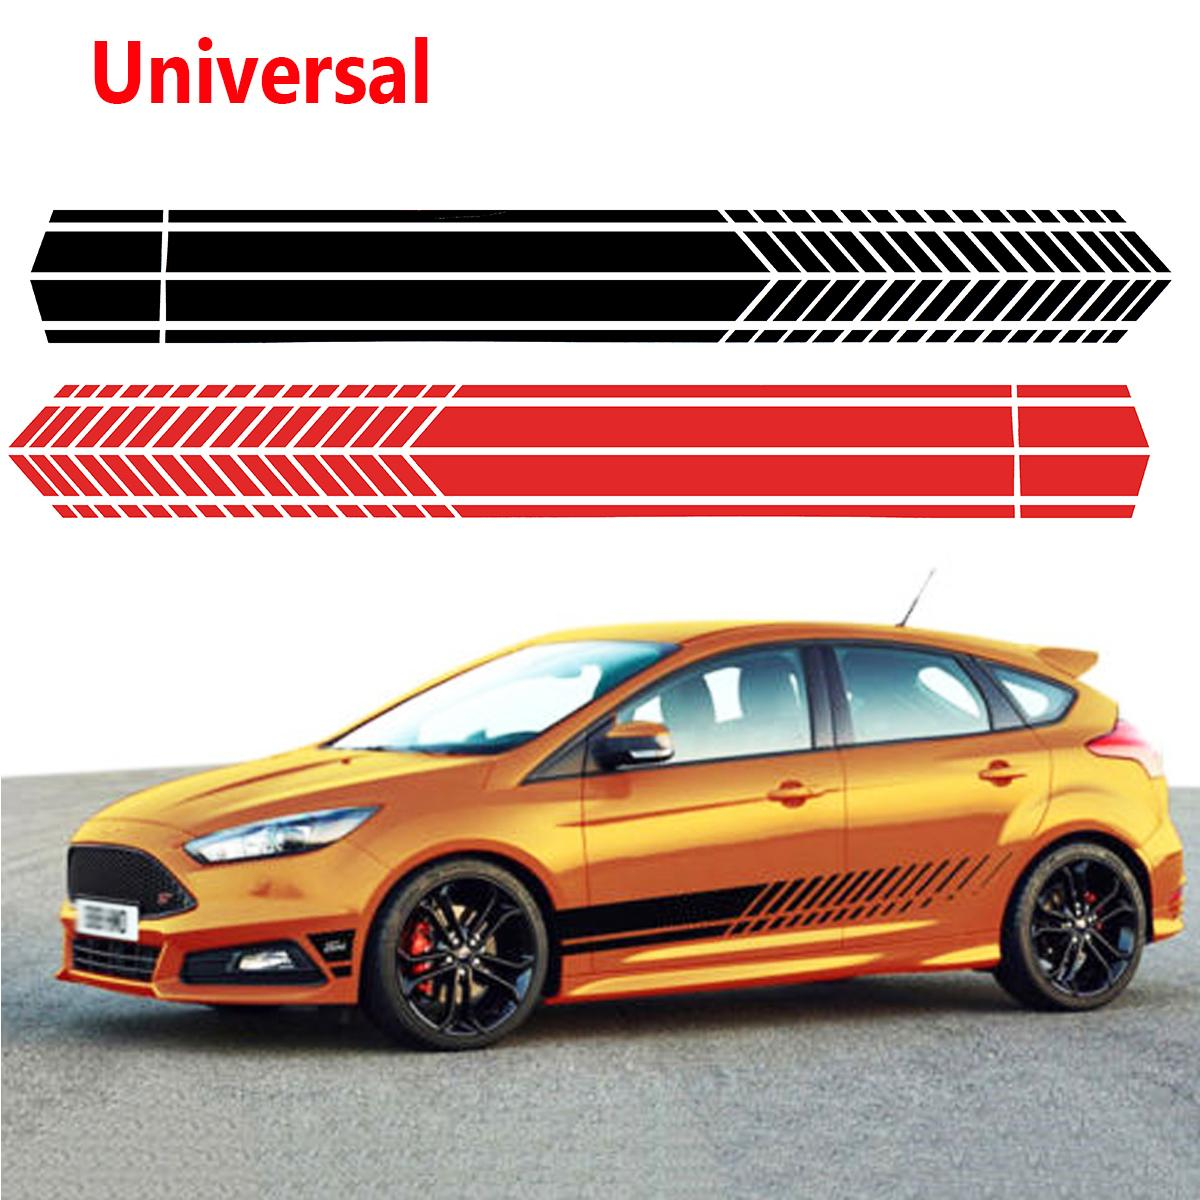 Universal Sports Racing Stripe Graphic Stickers Truck Auto Car Body Side Door Decals racing middle size resident evil decals bumper stickers for car